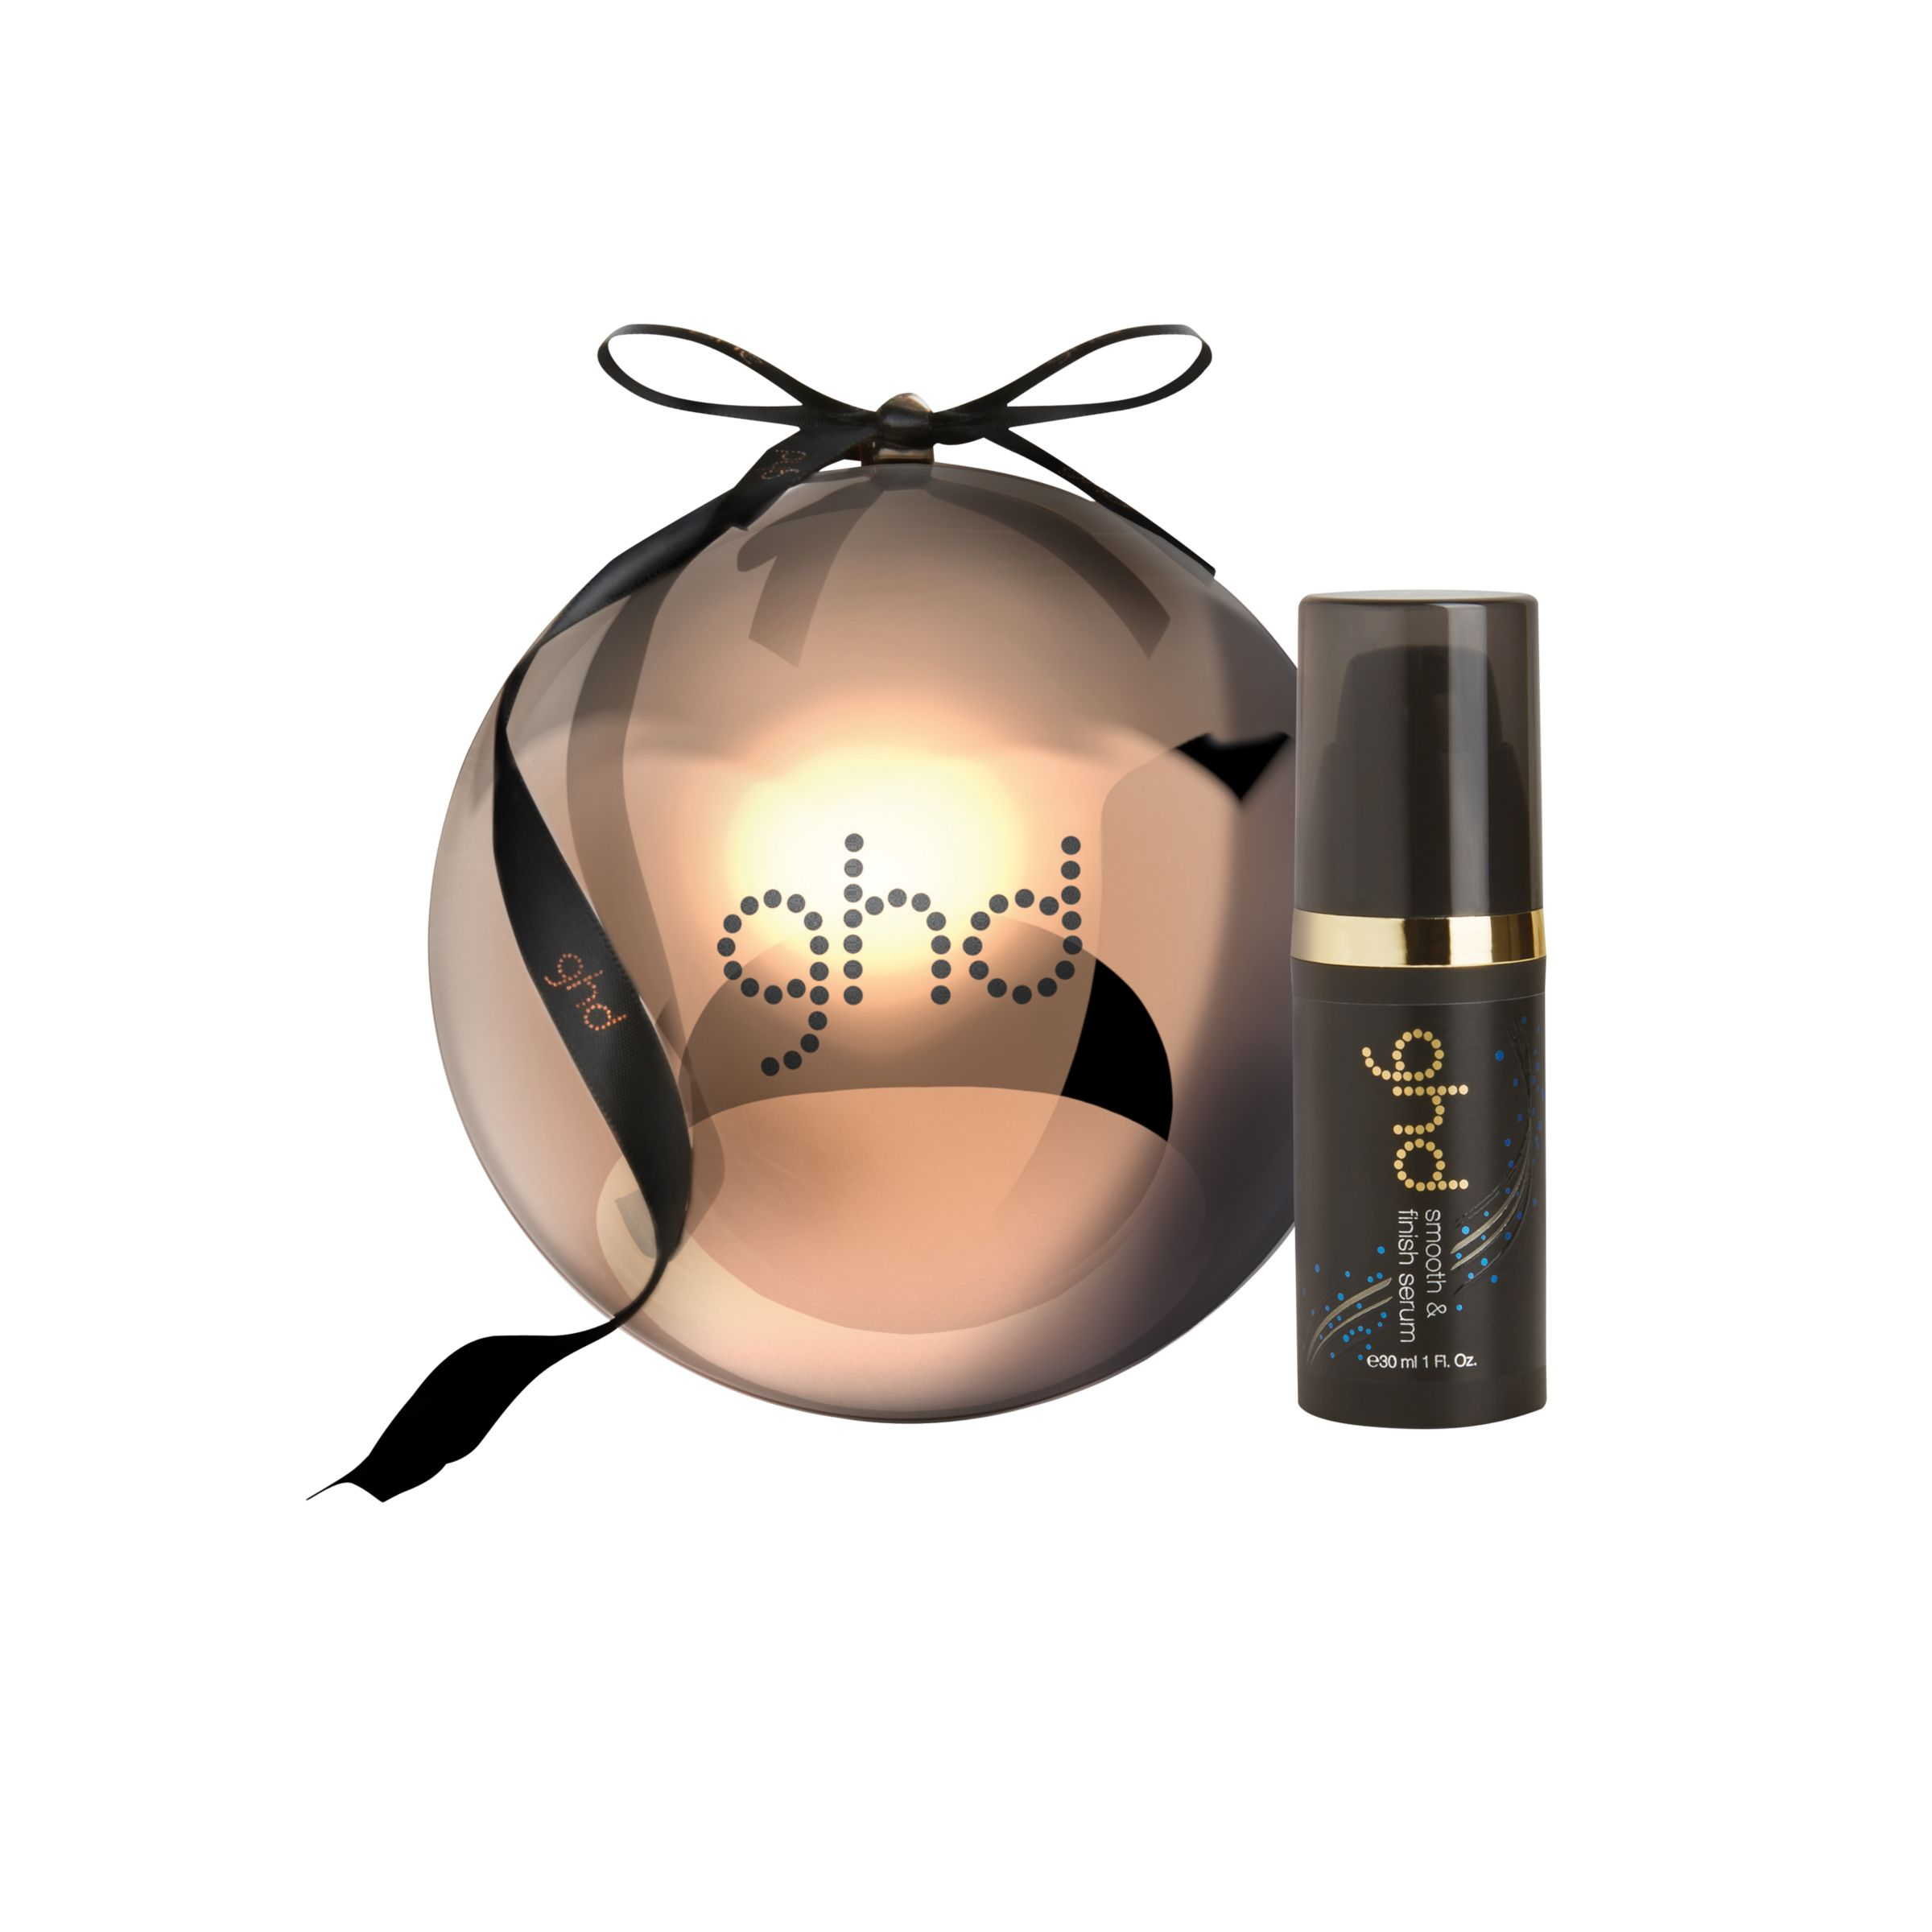 GHD ghd Sooth and Finish Serum Limited Edition Bauble